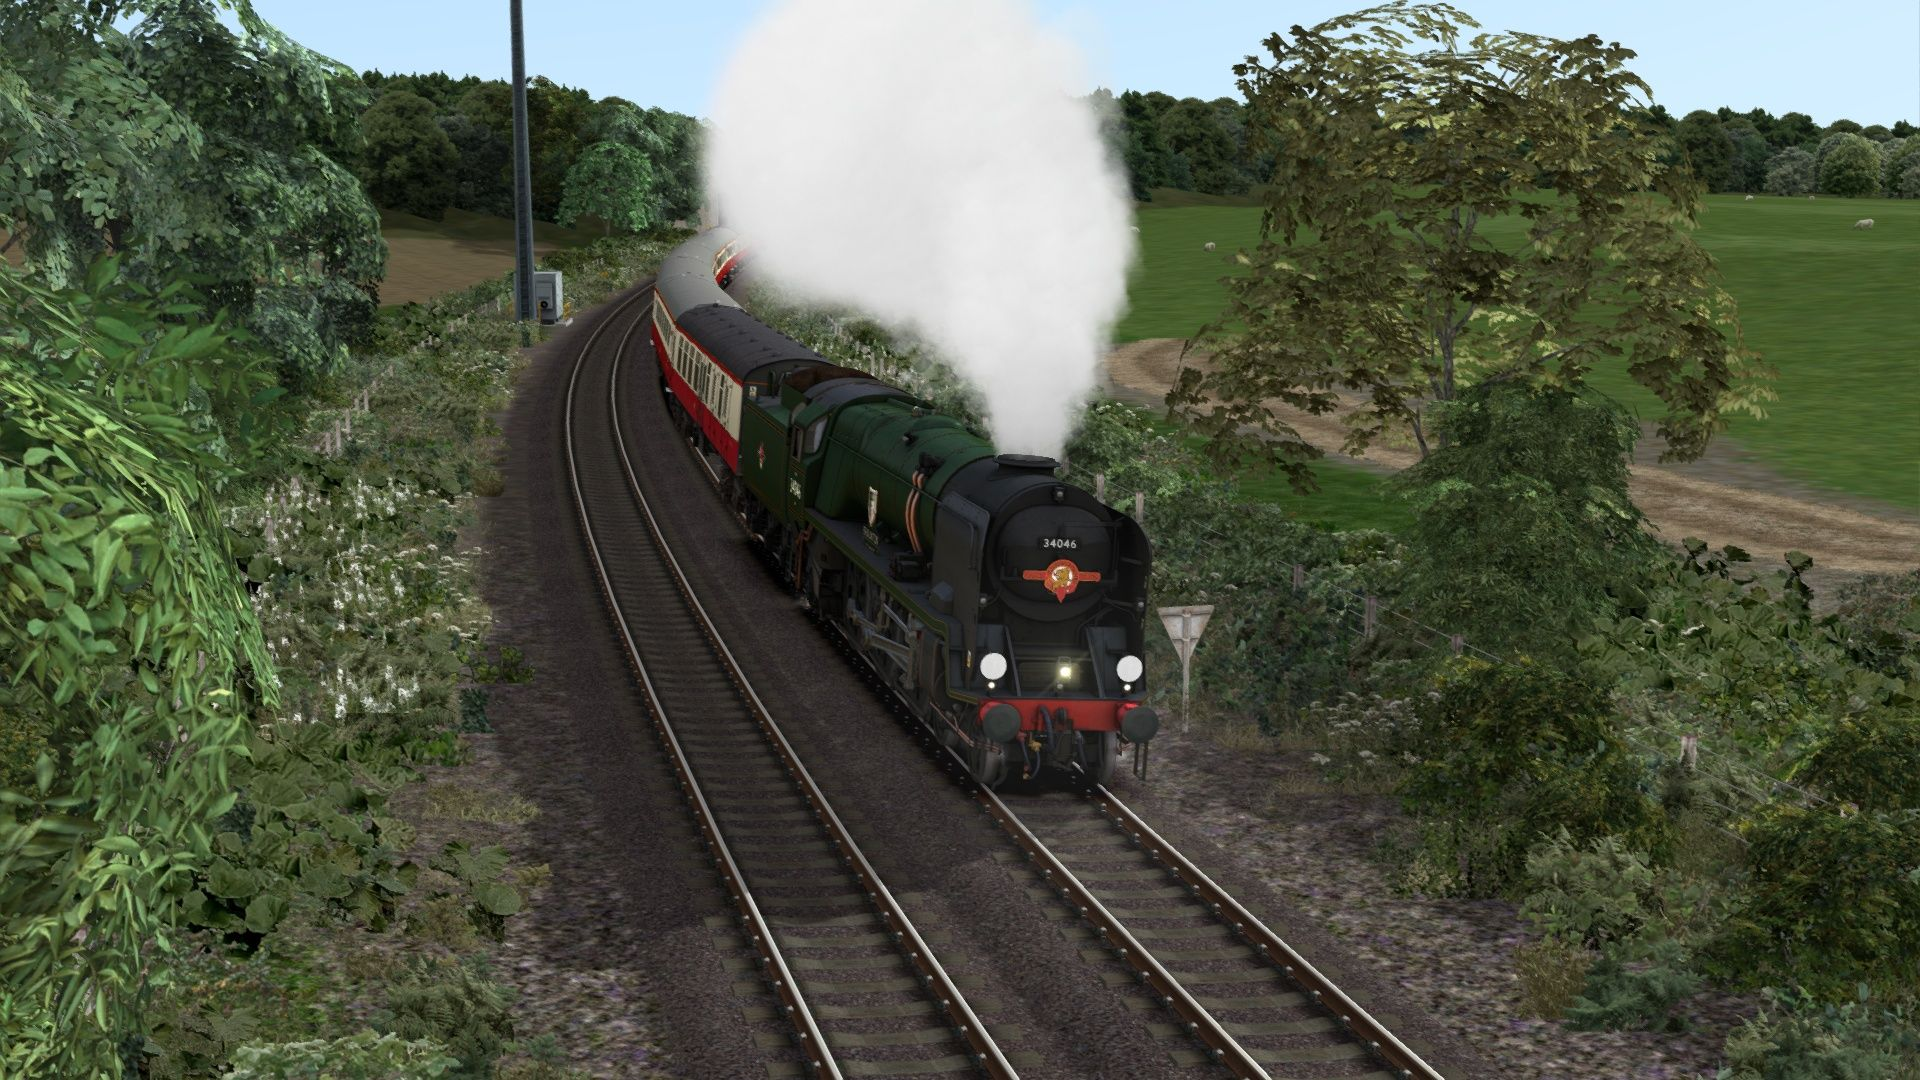 Screenshot_Welsh Marches Line - Newport to Shrewsbury_52.68067--2.75546_09-